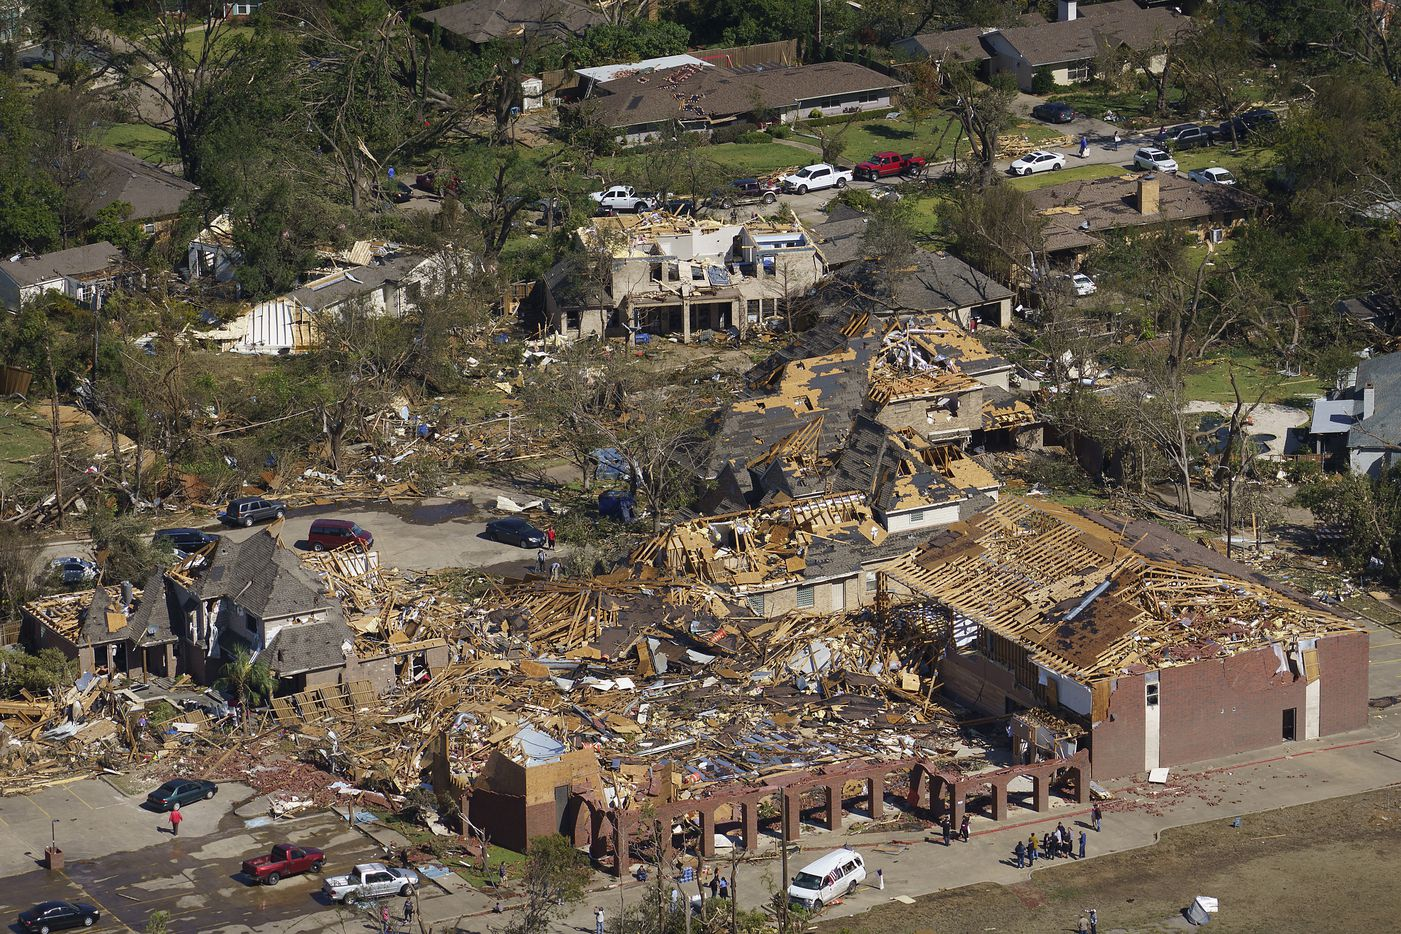 Damage to Primera Iglesia Bautista Mexicana church (bottom) just off  Walnut Hill Lane and homes behind it is seen in an aerial view of tornado damage on Monday, Oct. 21, 2019, in Dallas.